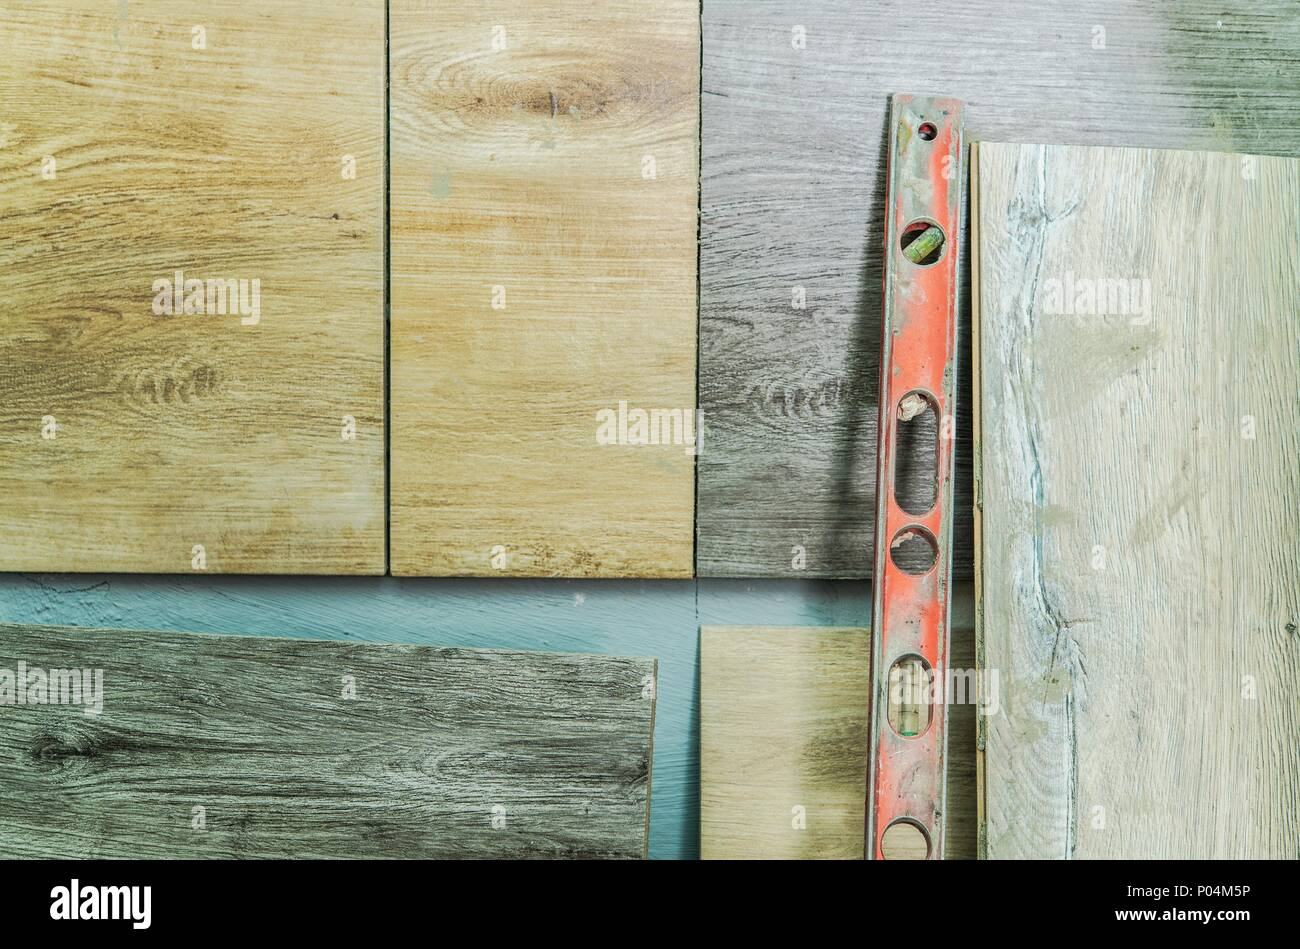 Wooden Like Ceramic Wall Tiles Installation Two Different Tiles And